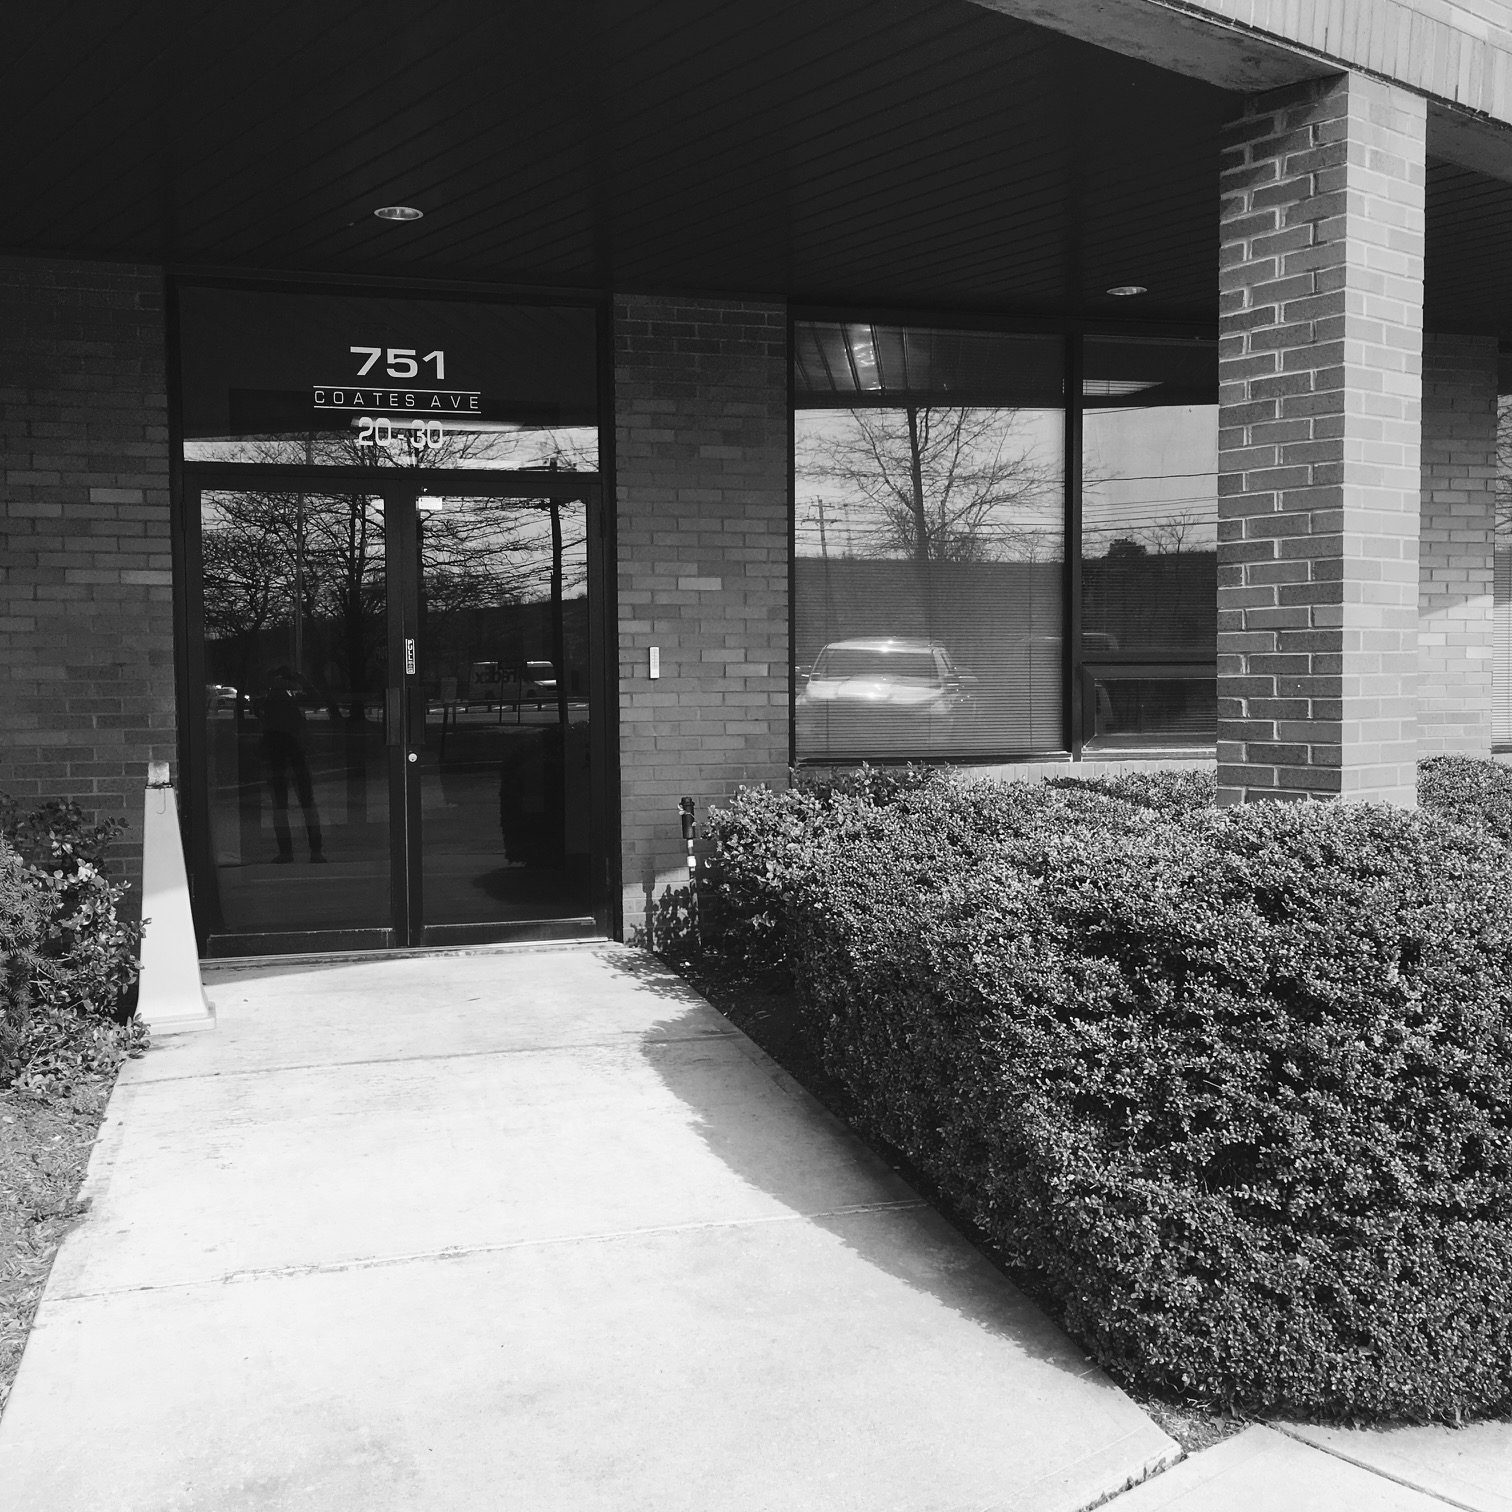 Our Holbrook office is stragically located in mid Long Island, enabling access to both Nassau and Suffolk counties.